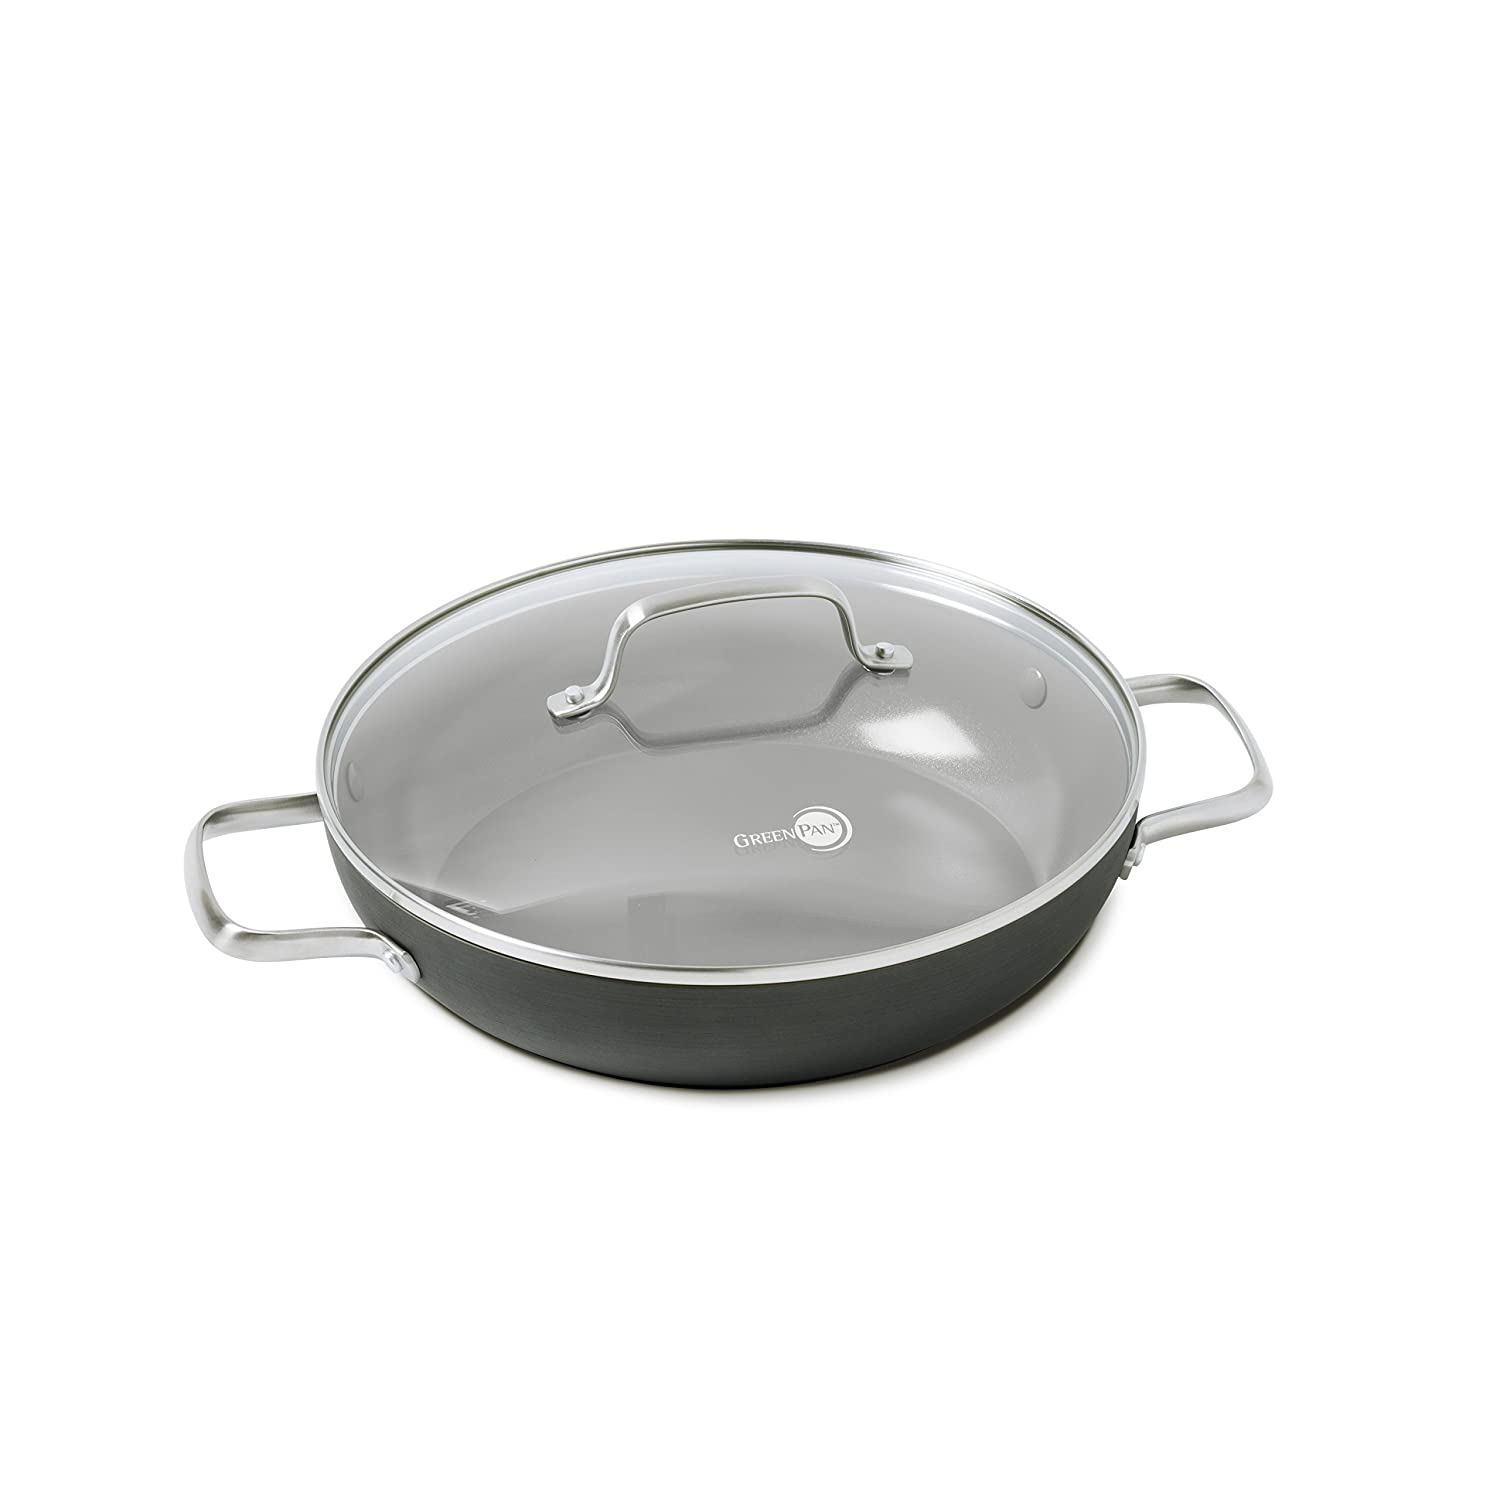 "GreenPan Chatham 11"" ceramic Non-Stick Covered Everyday Pan with 2 Helpers, Grey"